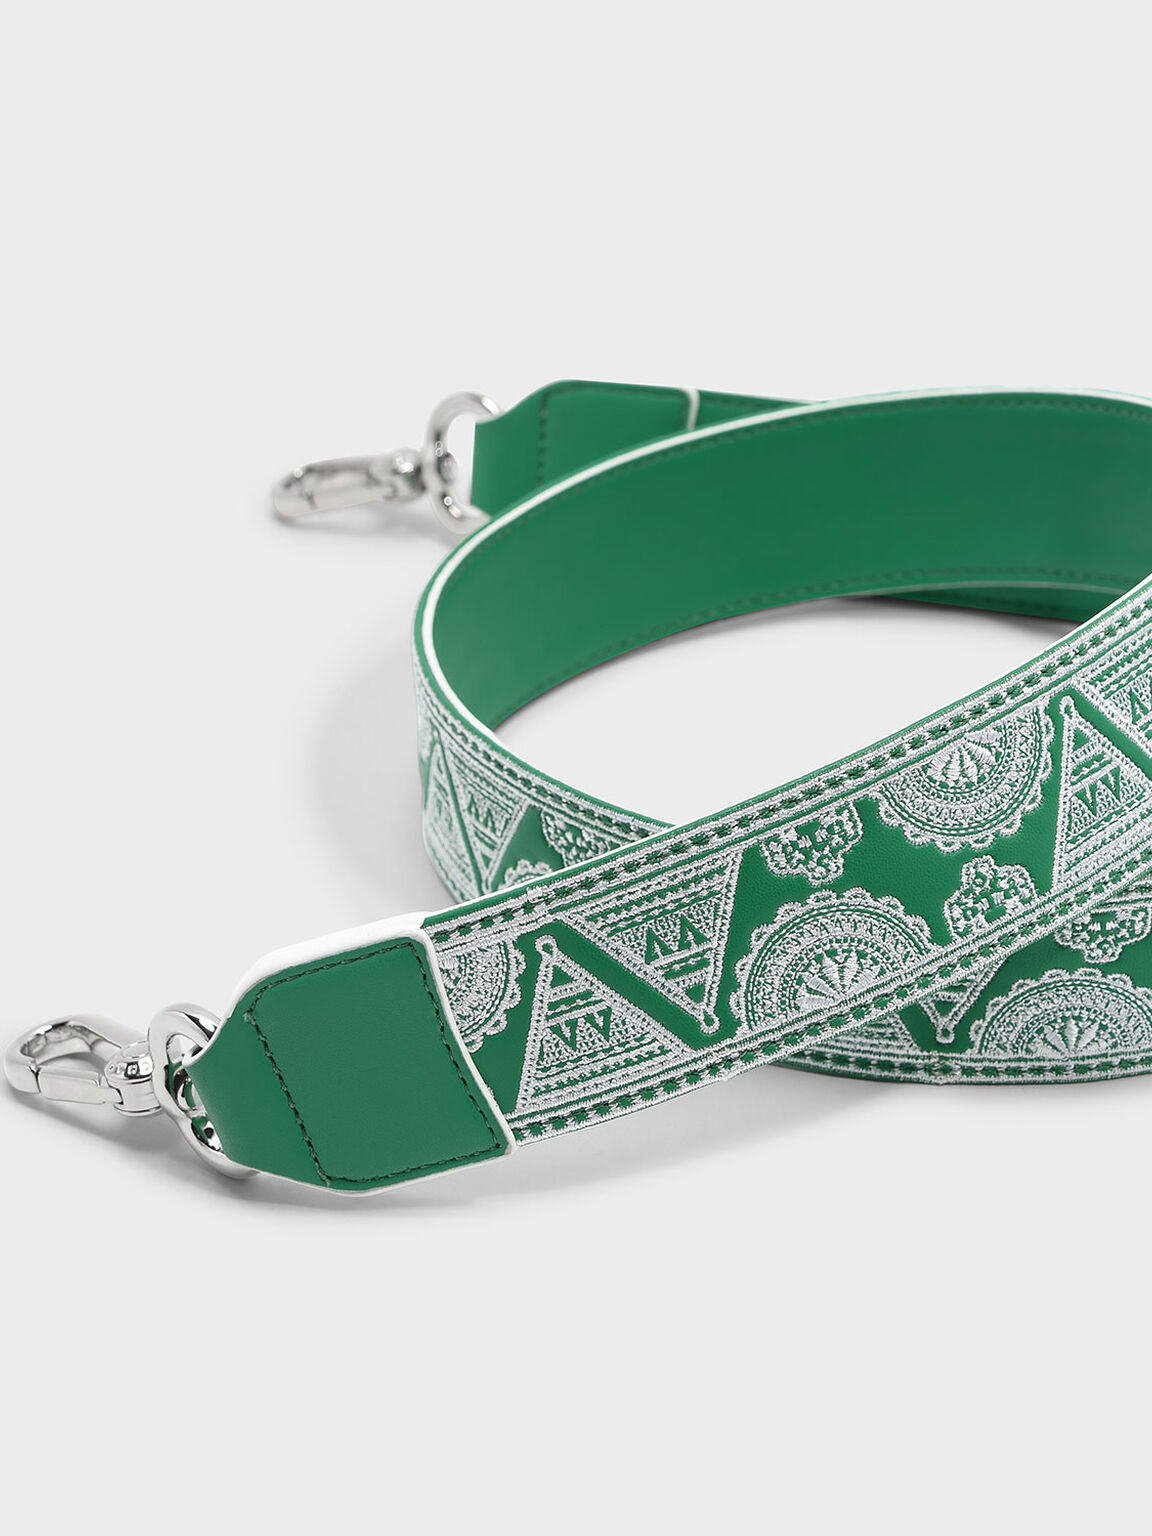 Printed Bag Strap, Green, hi-res